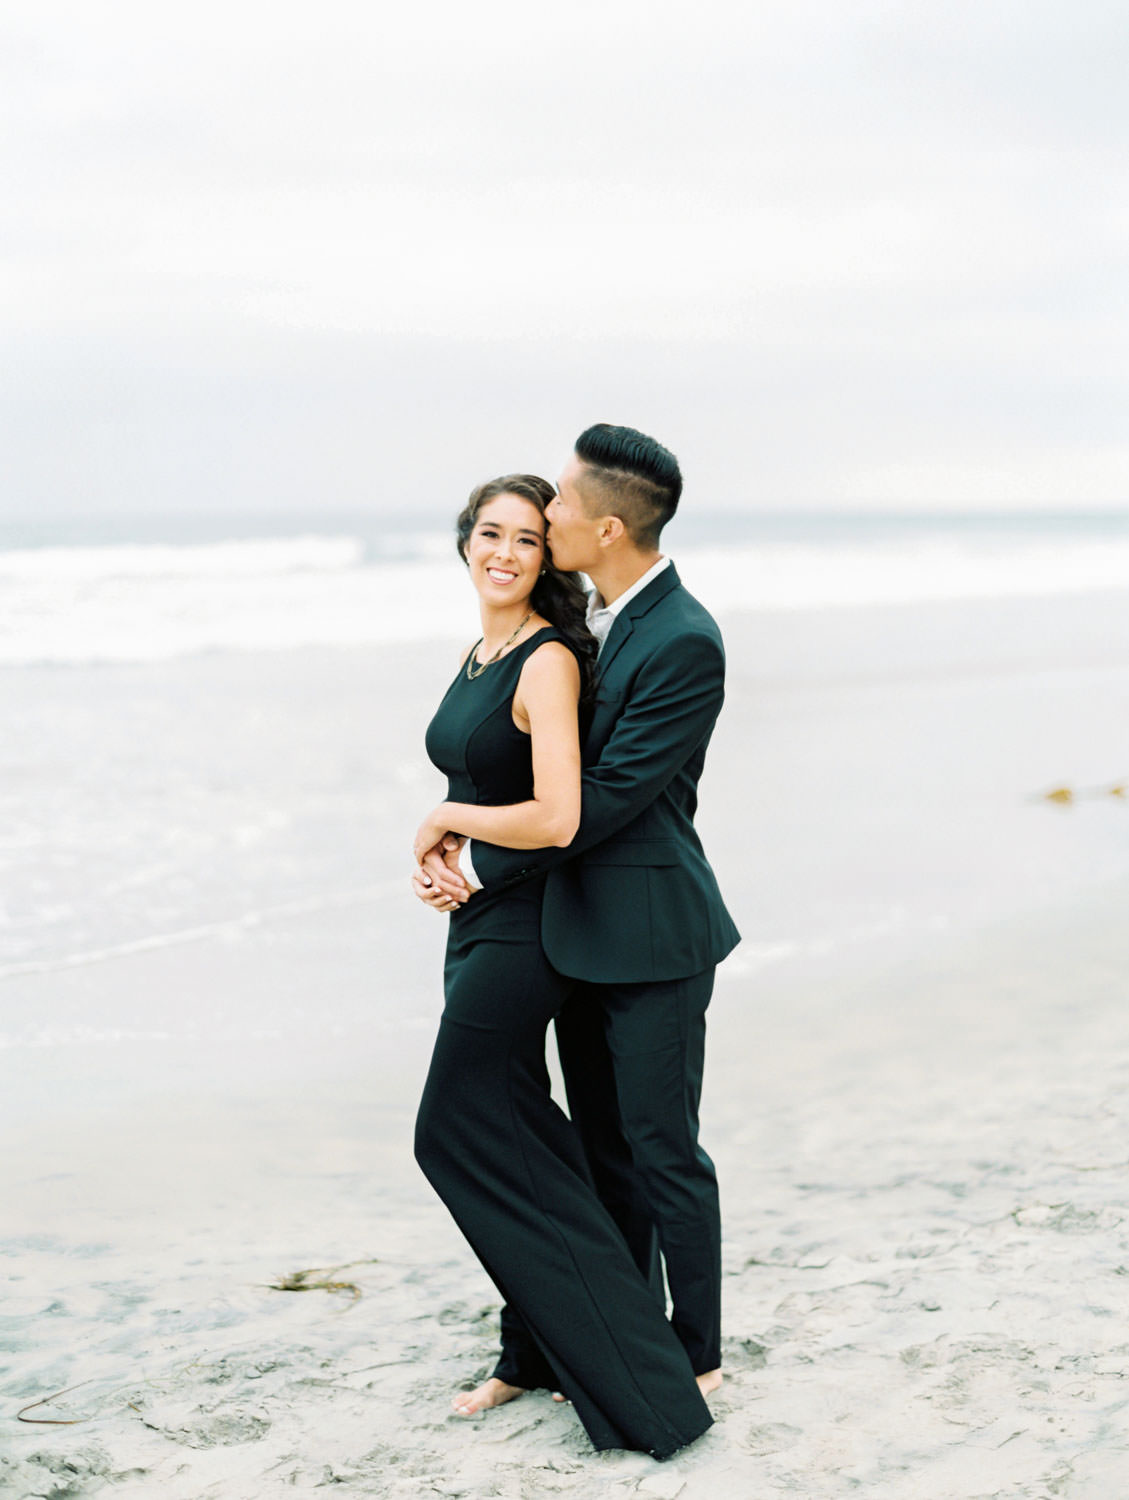 Groom kissing the bride. Engagement photo outfit ideas with a formal black suit and black dress. Torrey Pines beach photos on film by Cavin Elizabeth Photography.